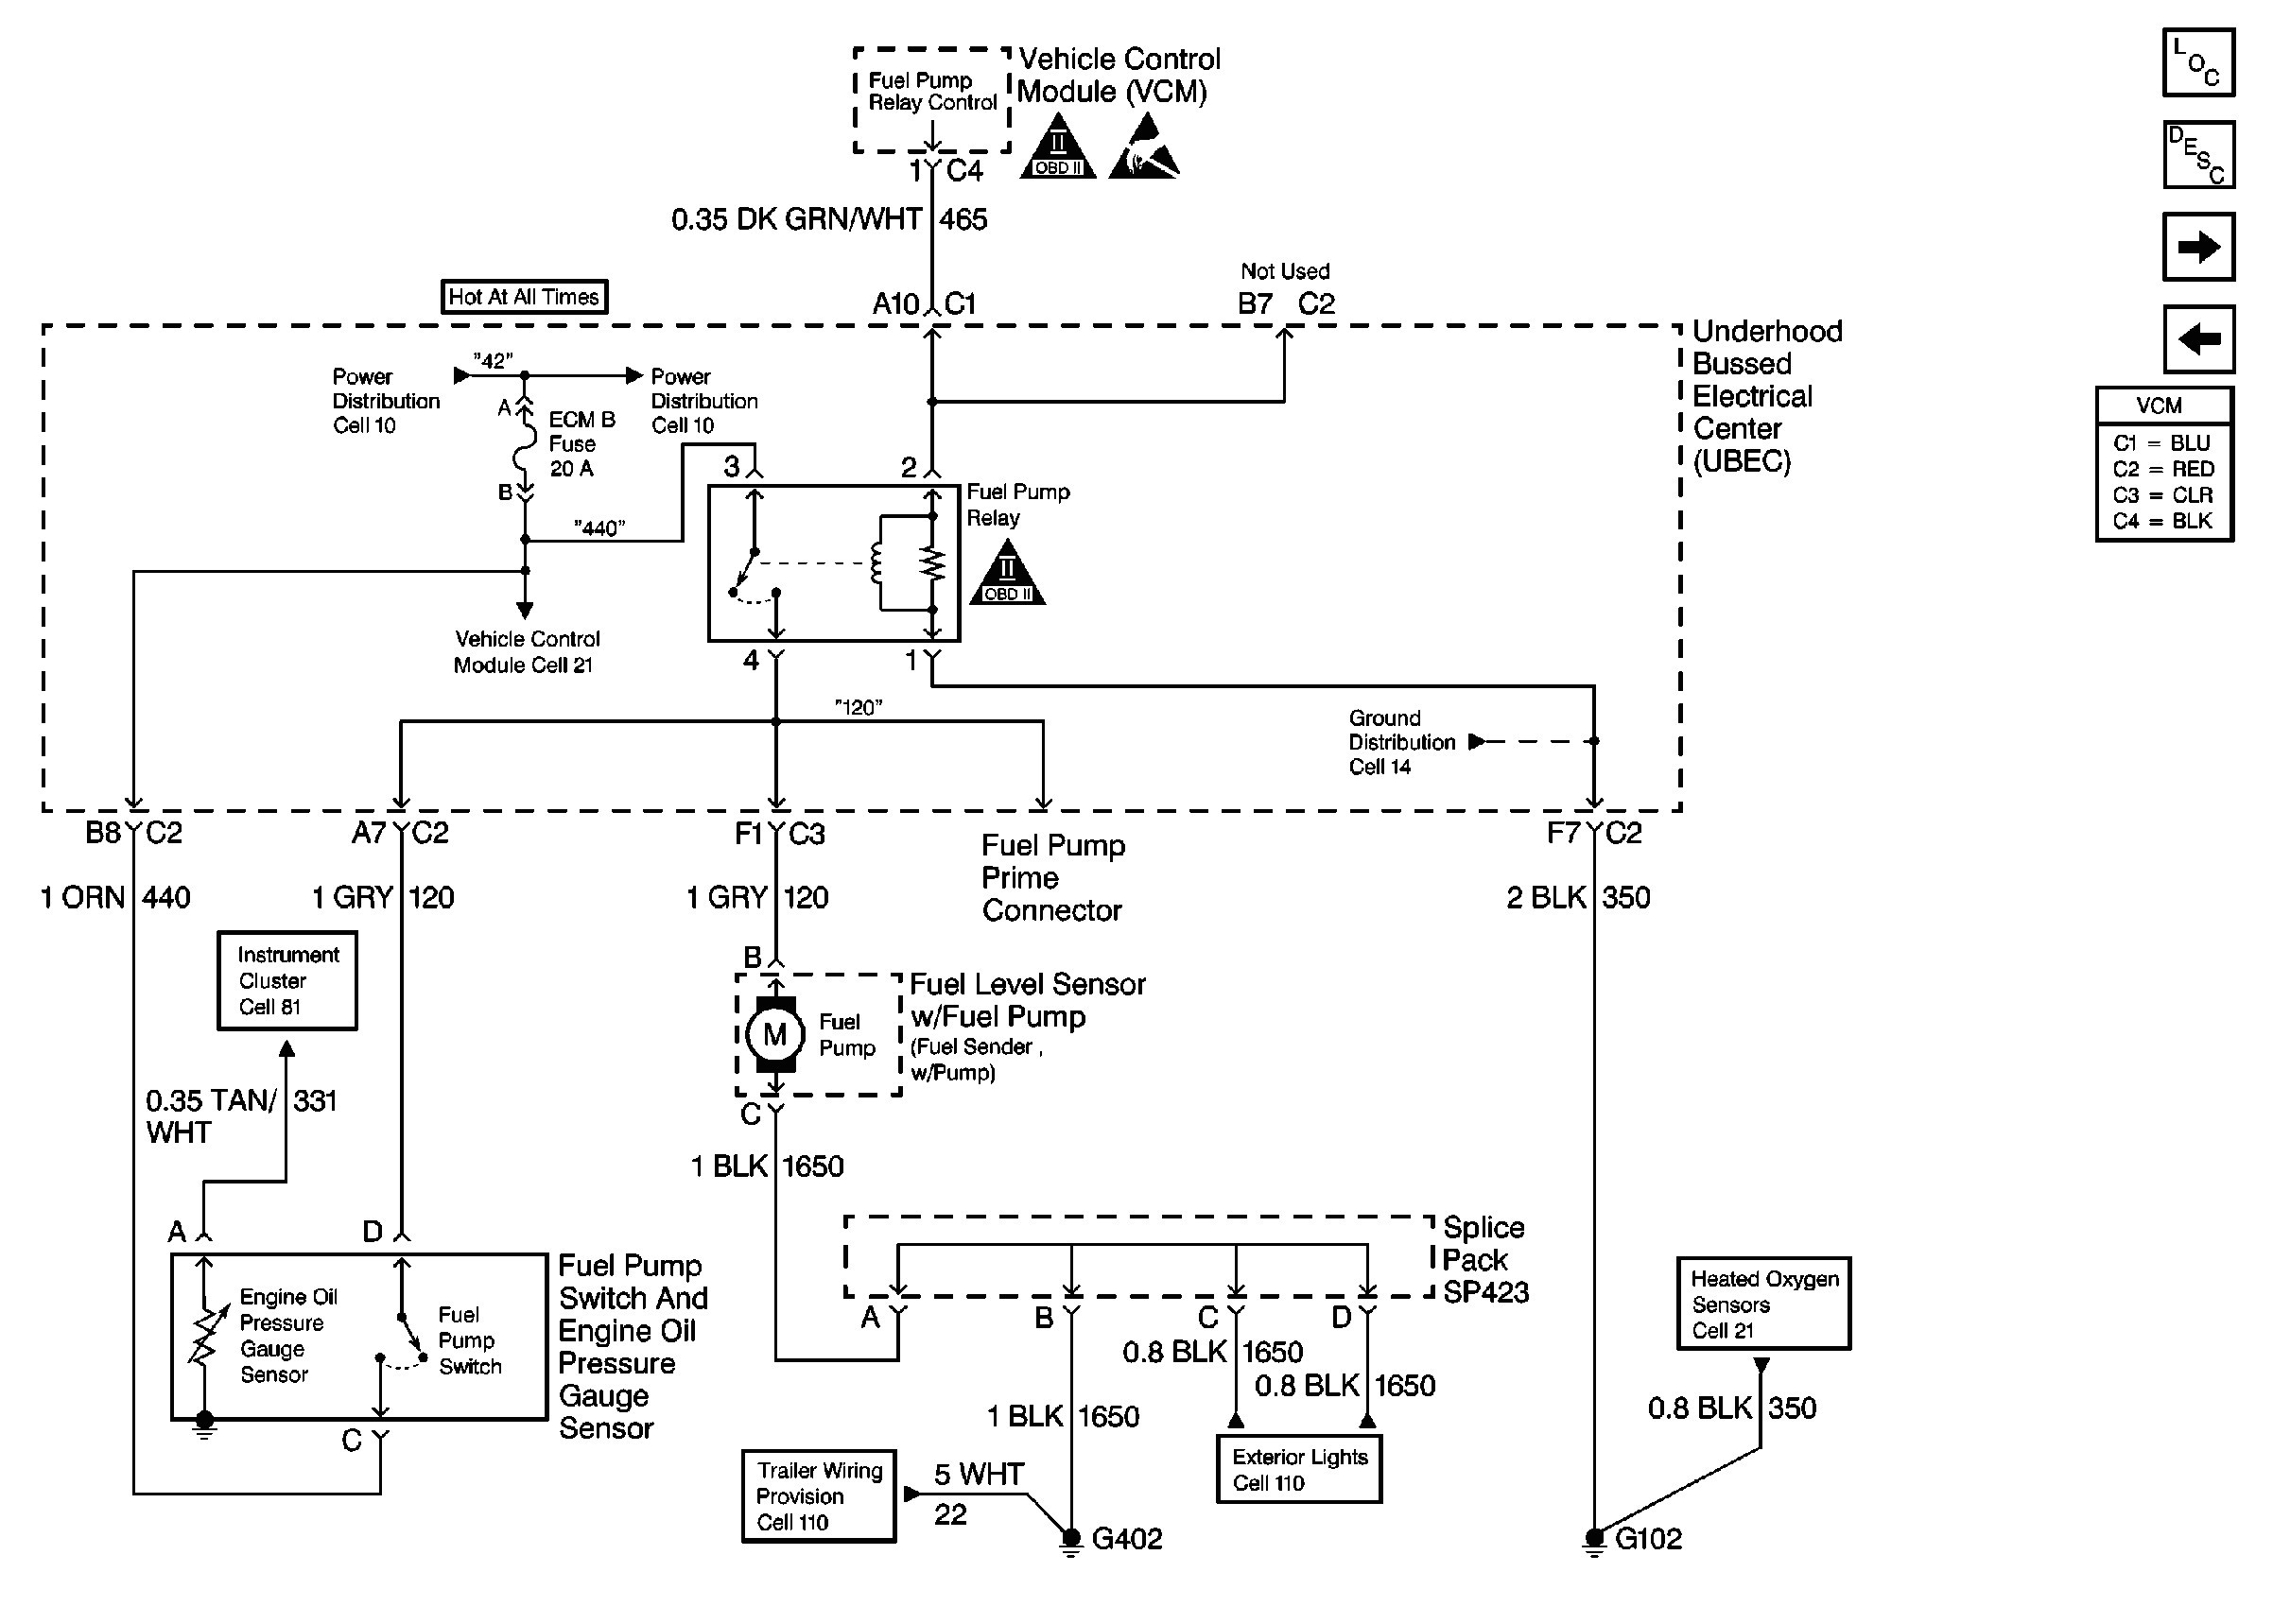 Electric Fuel Pump Relay Wiring Diagram Gm Fuel Pump Wiring Diagram Collection Of Electric Fuel Pump Relay Wiring Diagram